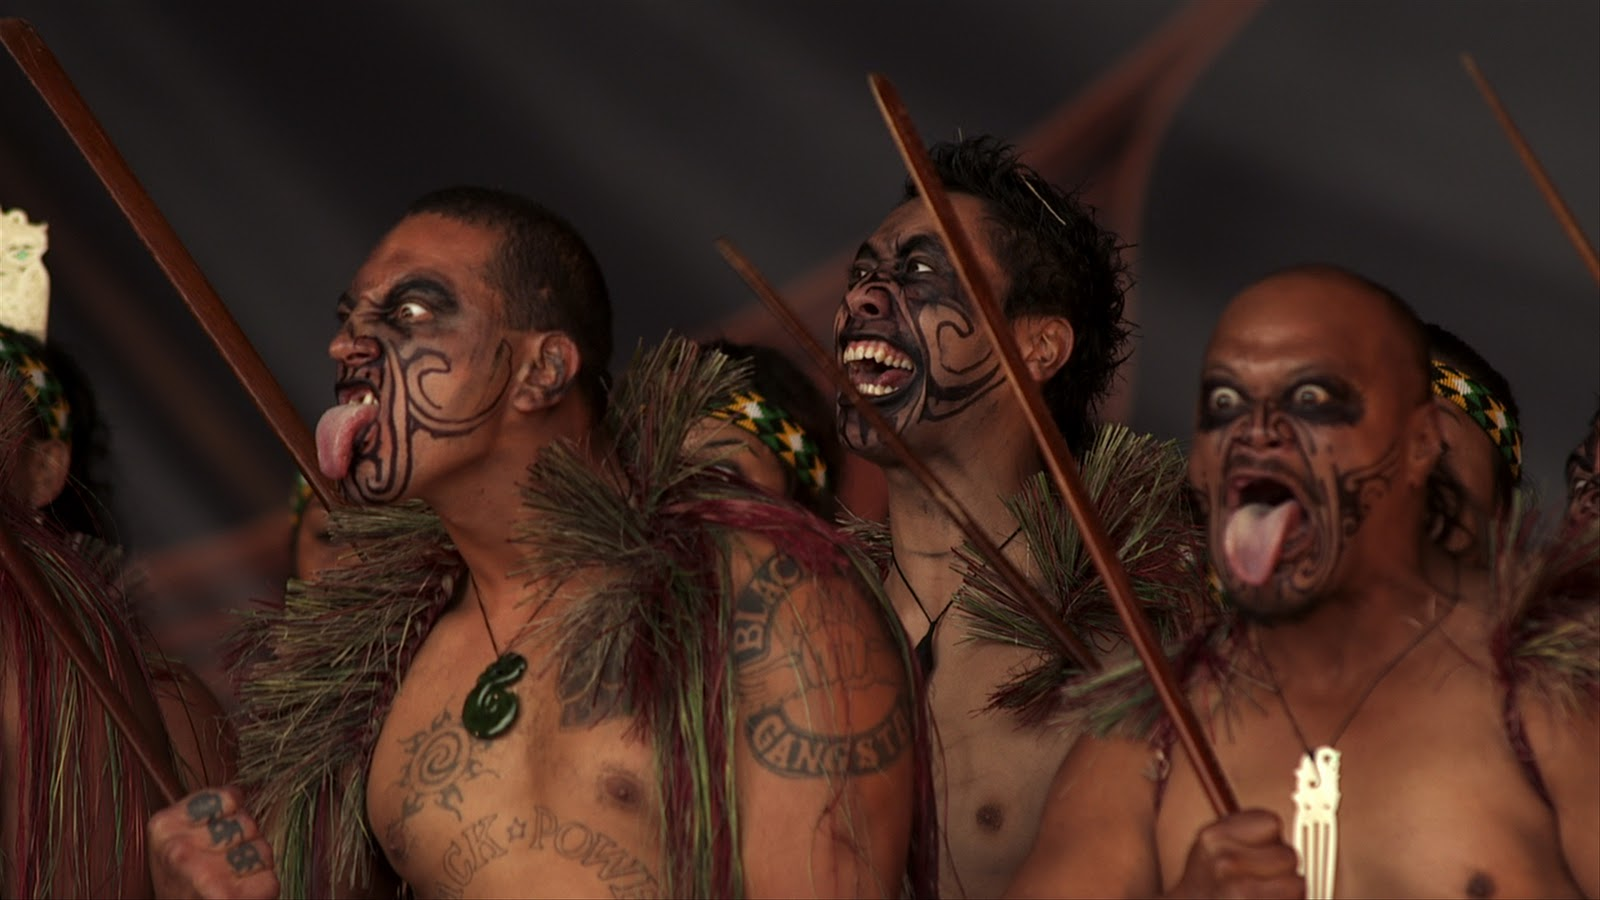 maori tribe New zealand maori culture: find out more about new zealand's unique maori culture at wwwfourcornersconz - your complete online travel guide to new zealand.